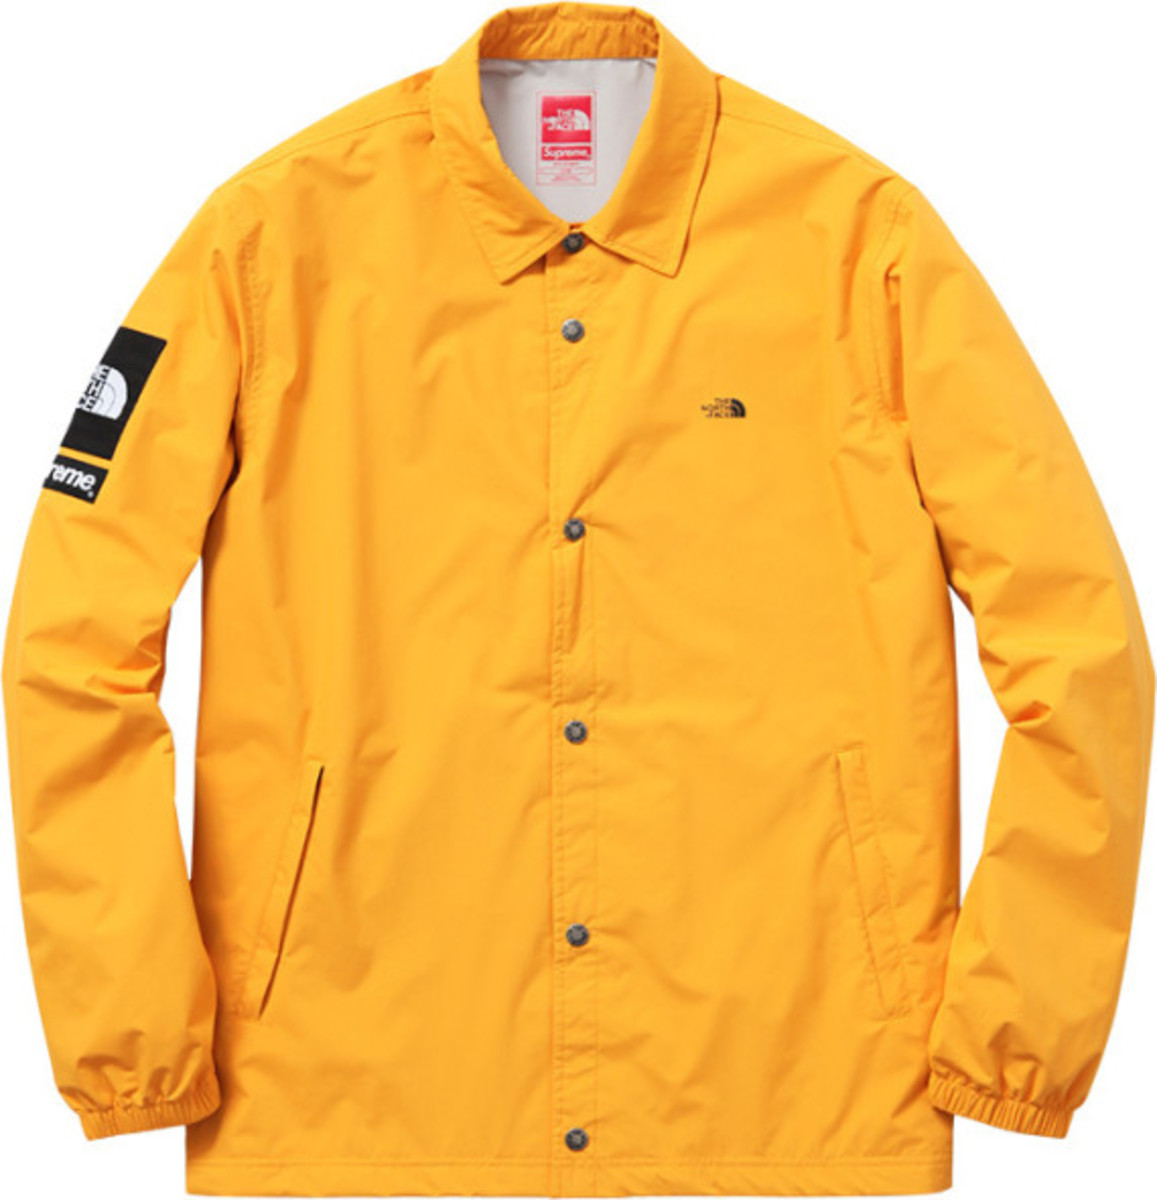 Supreme x The North Face - Spring/Summer 2015 Apparel and Gear Collection - 18